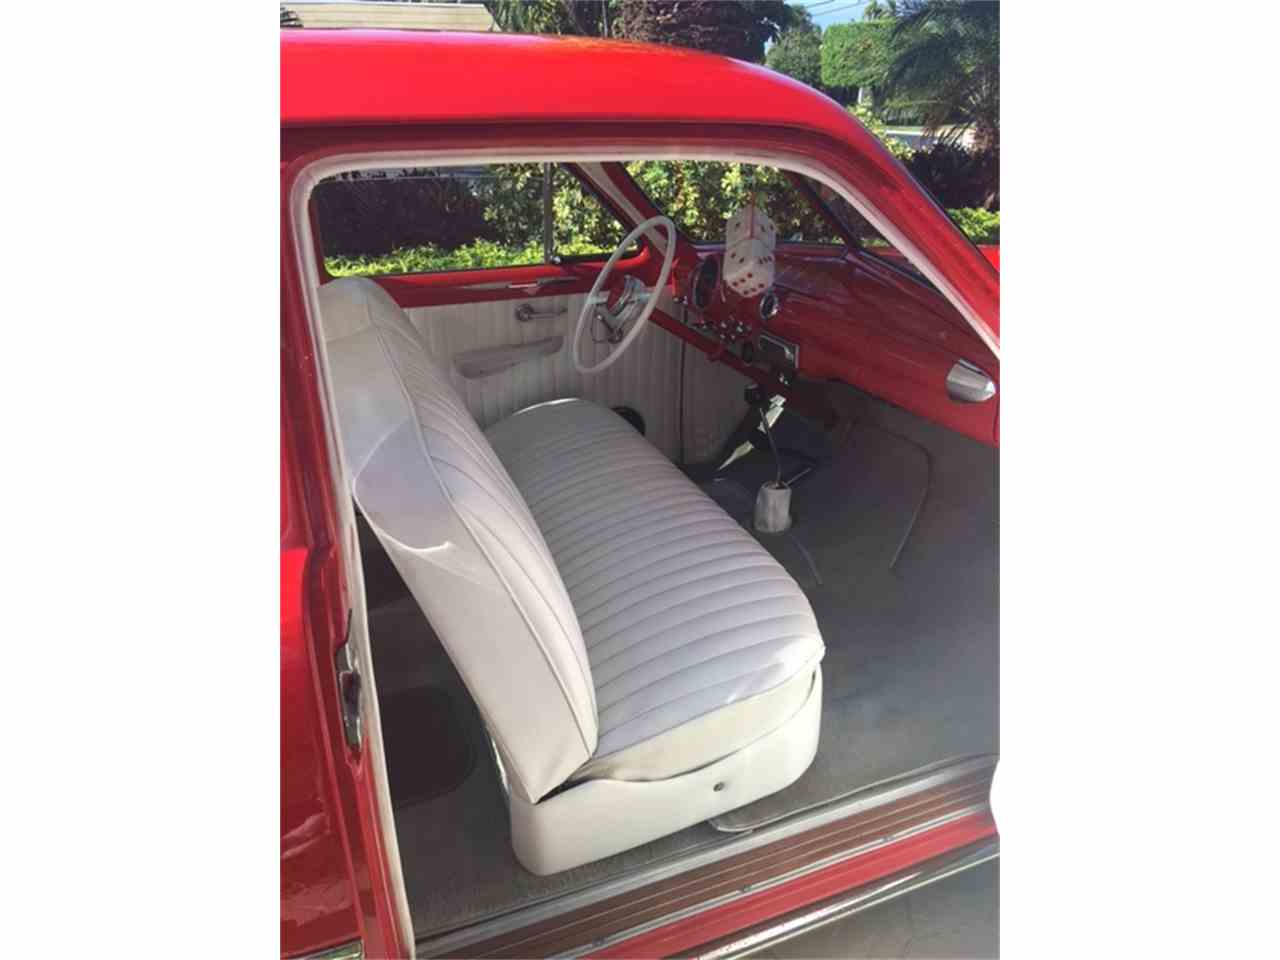 Large Picture of '49 Ford Custom located in Oakland park Florida Offered by a Private Seller - IYVP